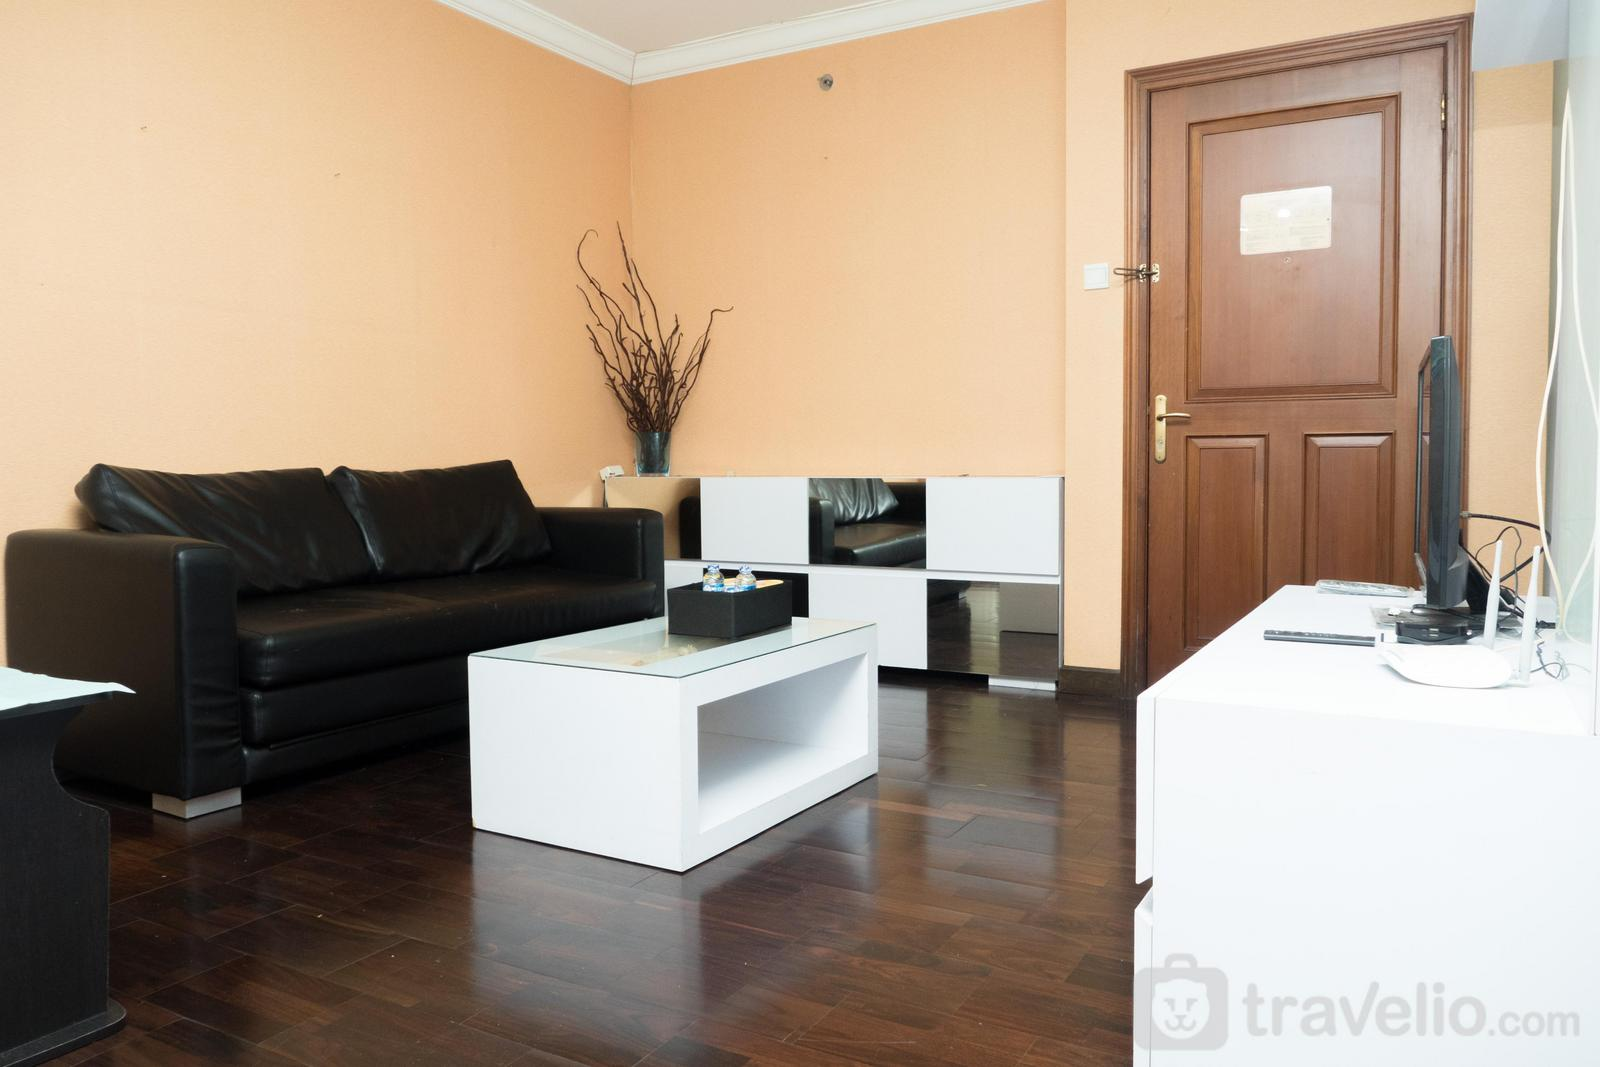 Majesty Apartment - Spacious Studio Room at Majesty Apartment By Travelio